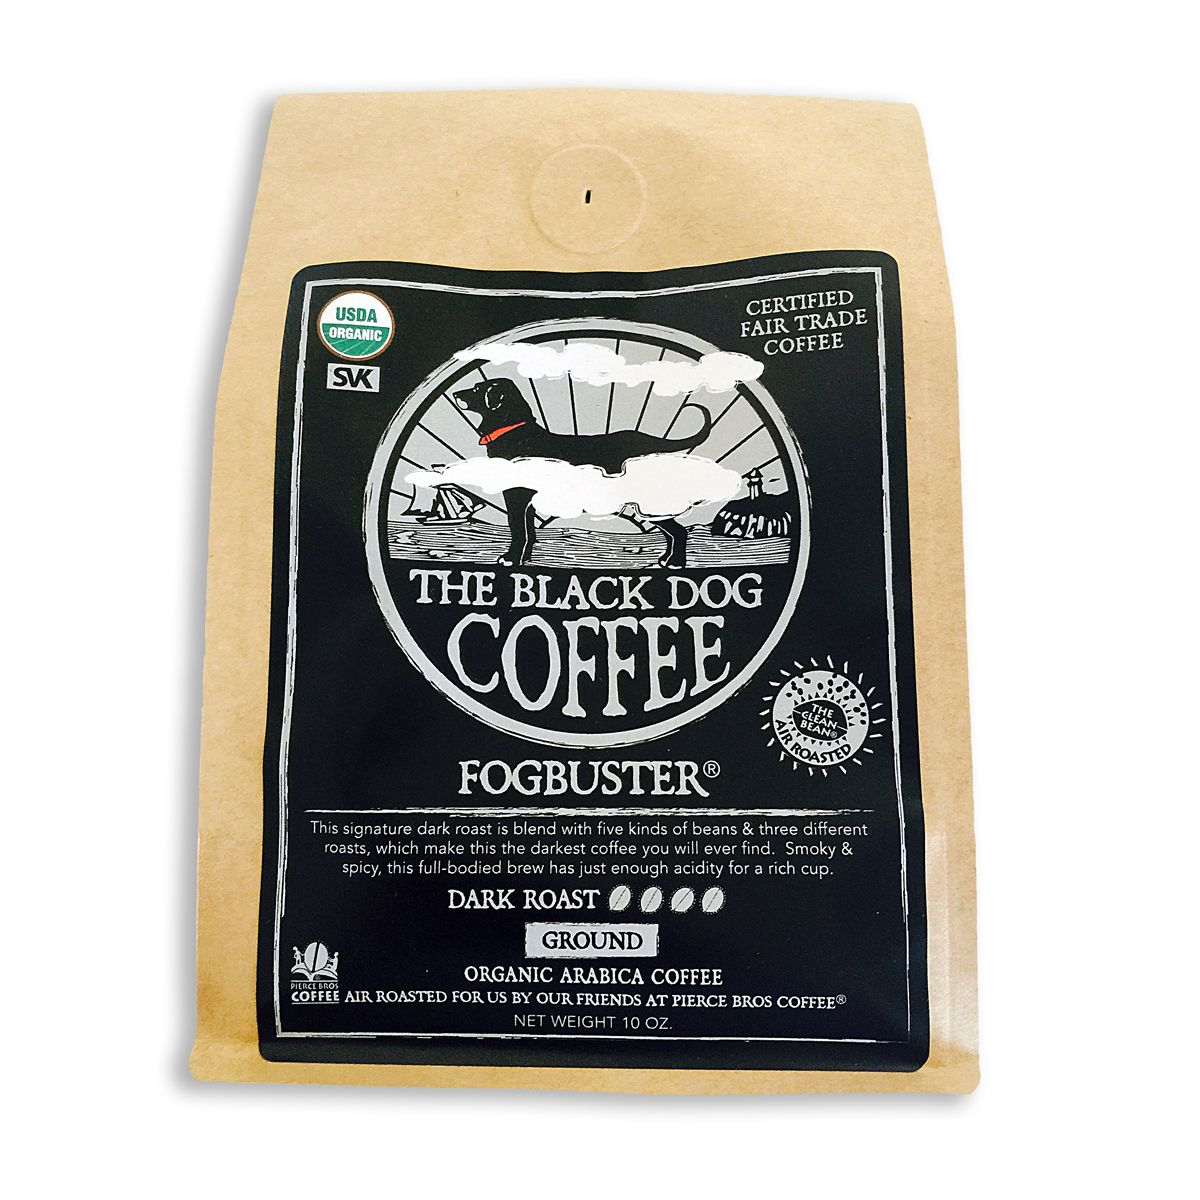 Fogbuster Blend Coffee Blended coffee, Black dog coffee